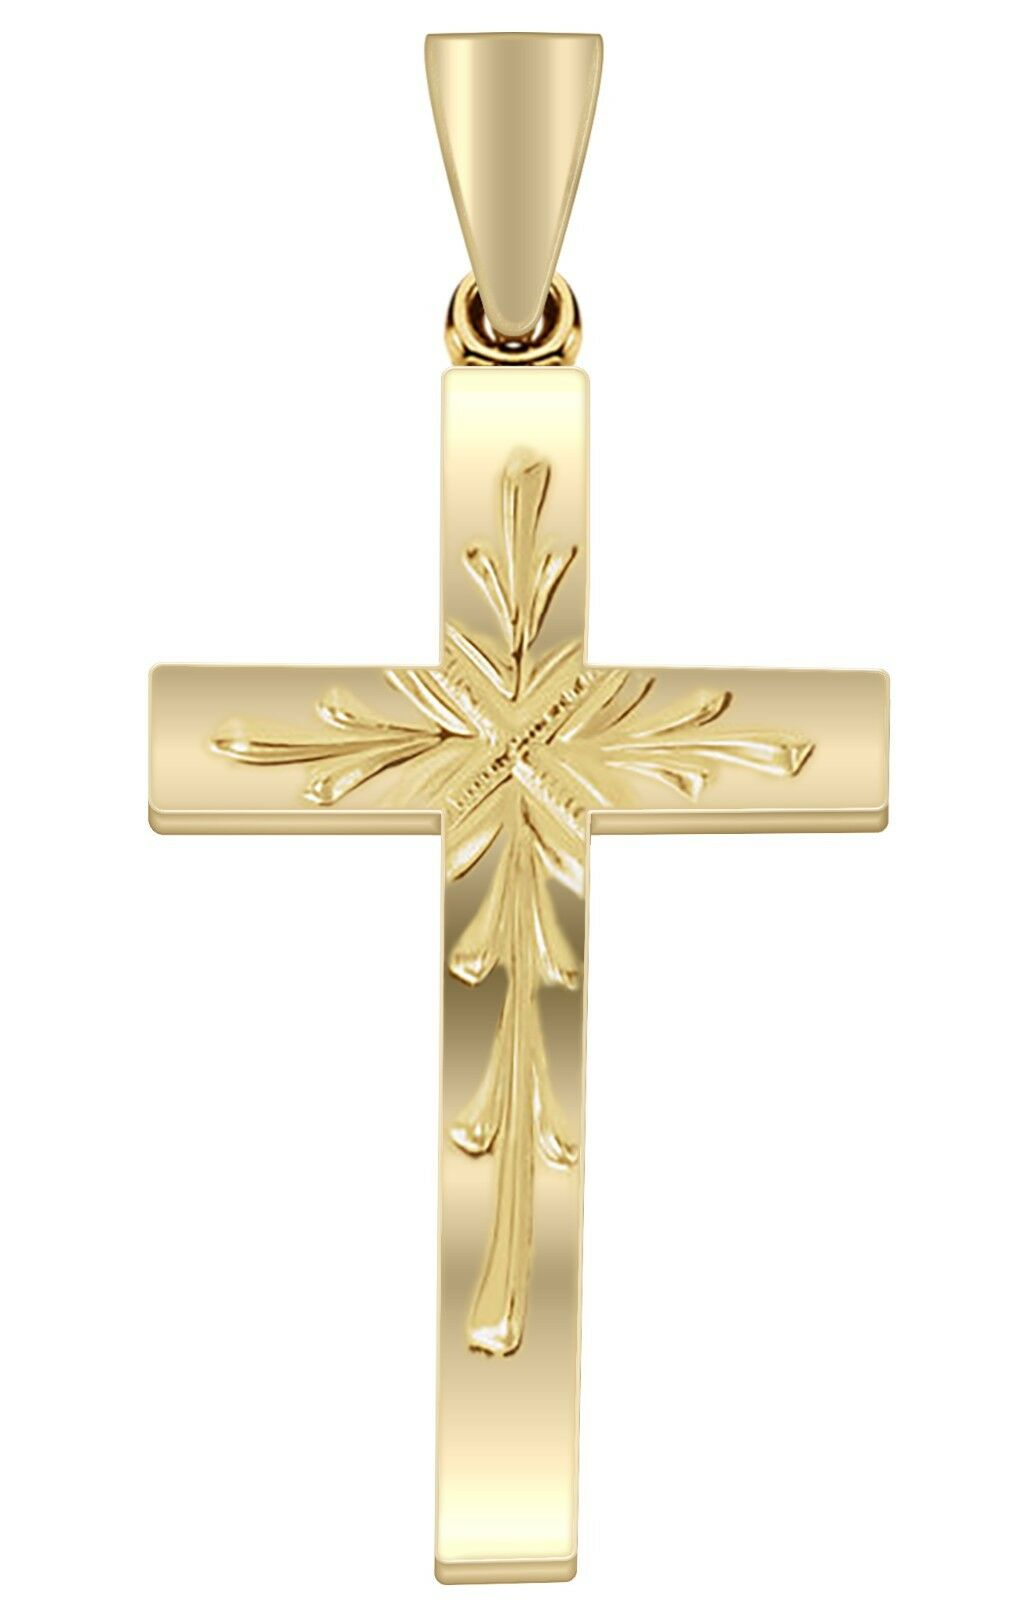 New 1in 14k Yellow gold Christian Religious Cross Pendant Polished Finish